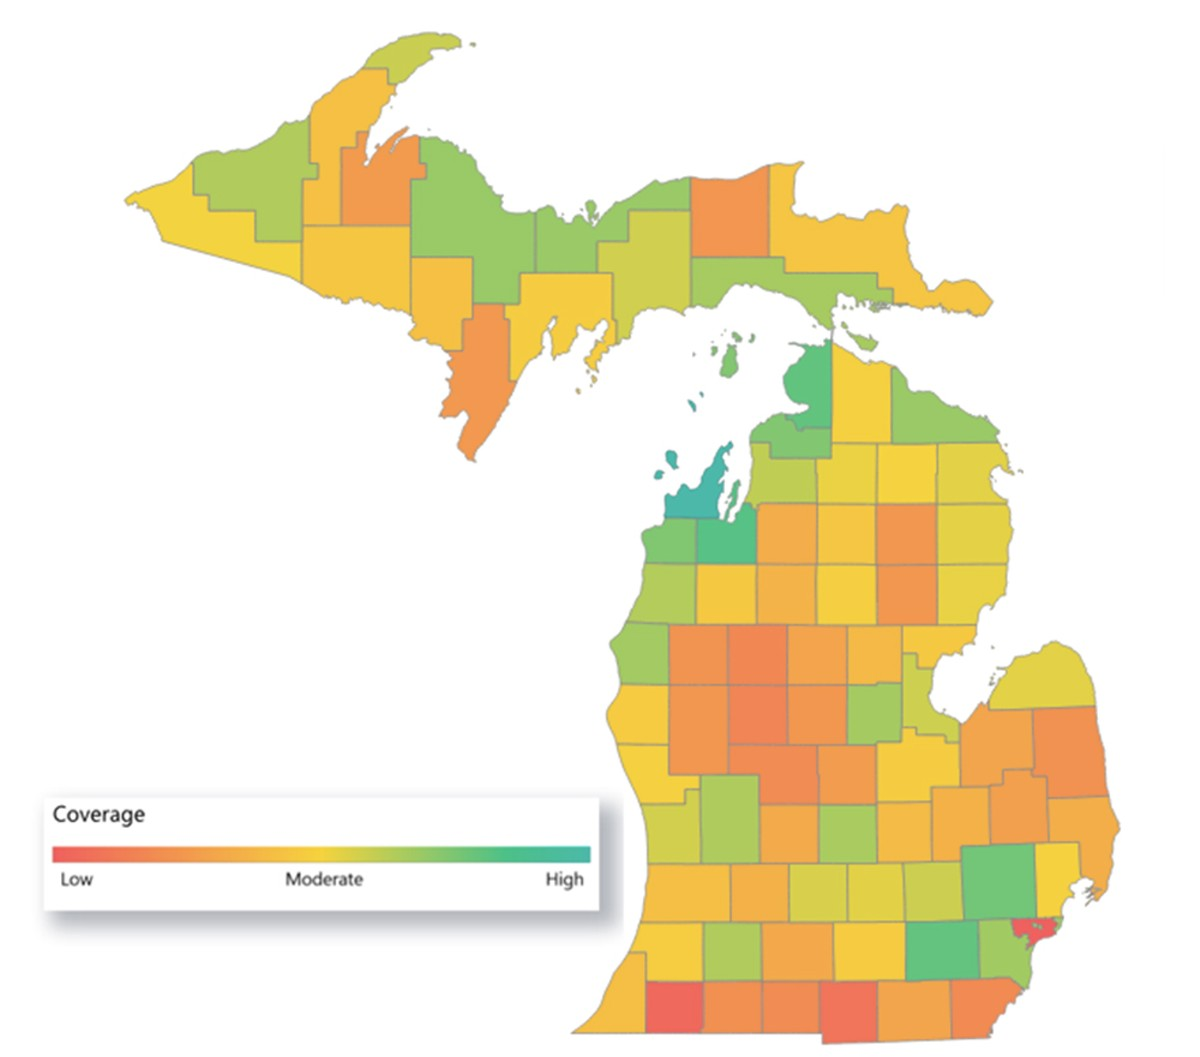 Vaccinations lag in Detroit: 55% of Michigan residents have received at least one dose of the COVID-19 vaccines, while only 24% of Detroiters have.